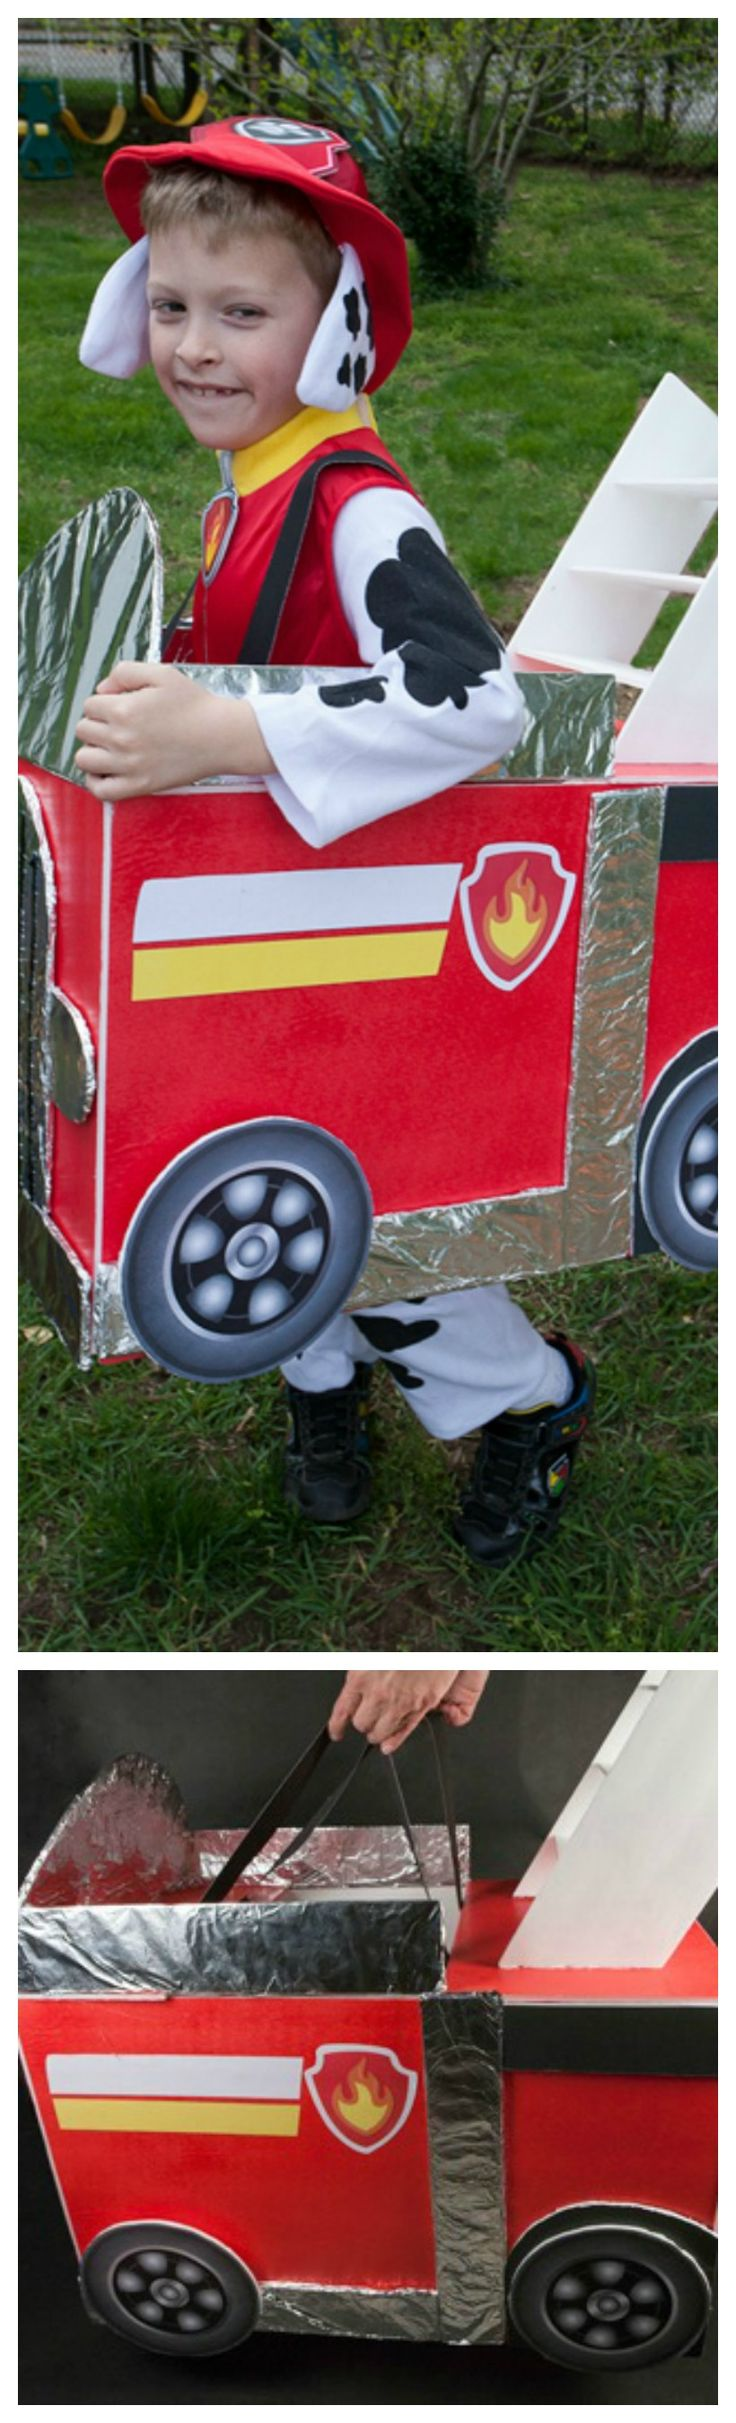 DIY Paw Patrol Firetruck Costume ~ Step by Step Instructions